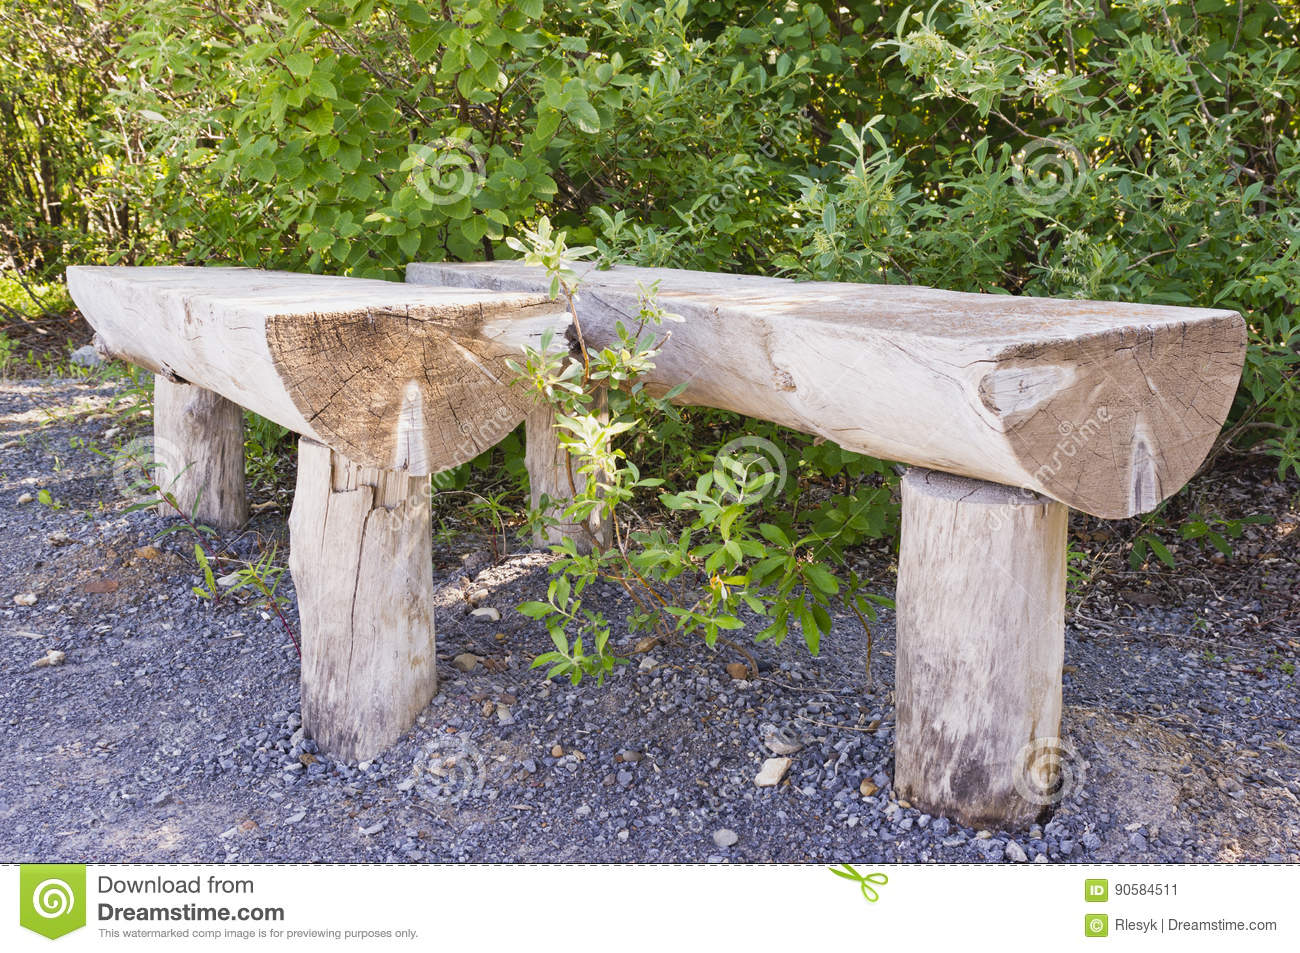 Prime Log Benches Stock Image Image Of Rest Wooden Benches Machost Co Dining Chair Design Ideas Machostcouk